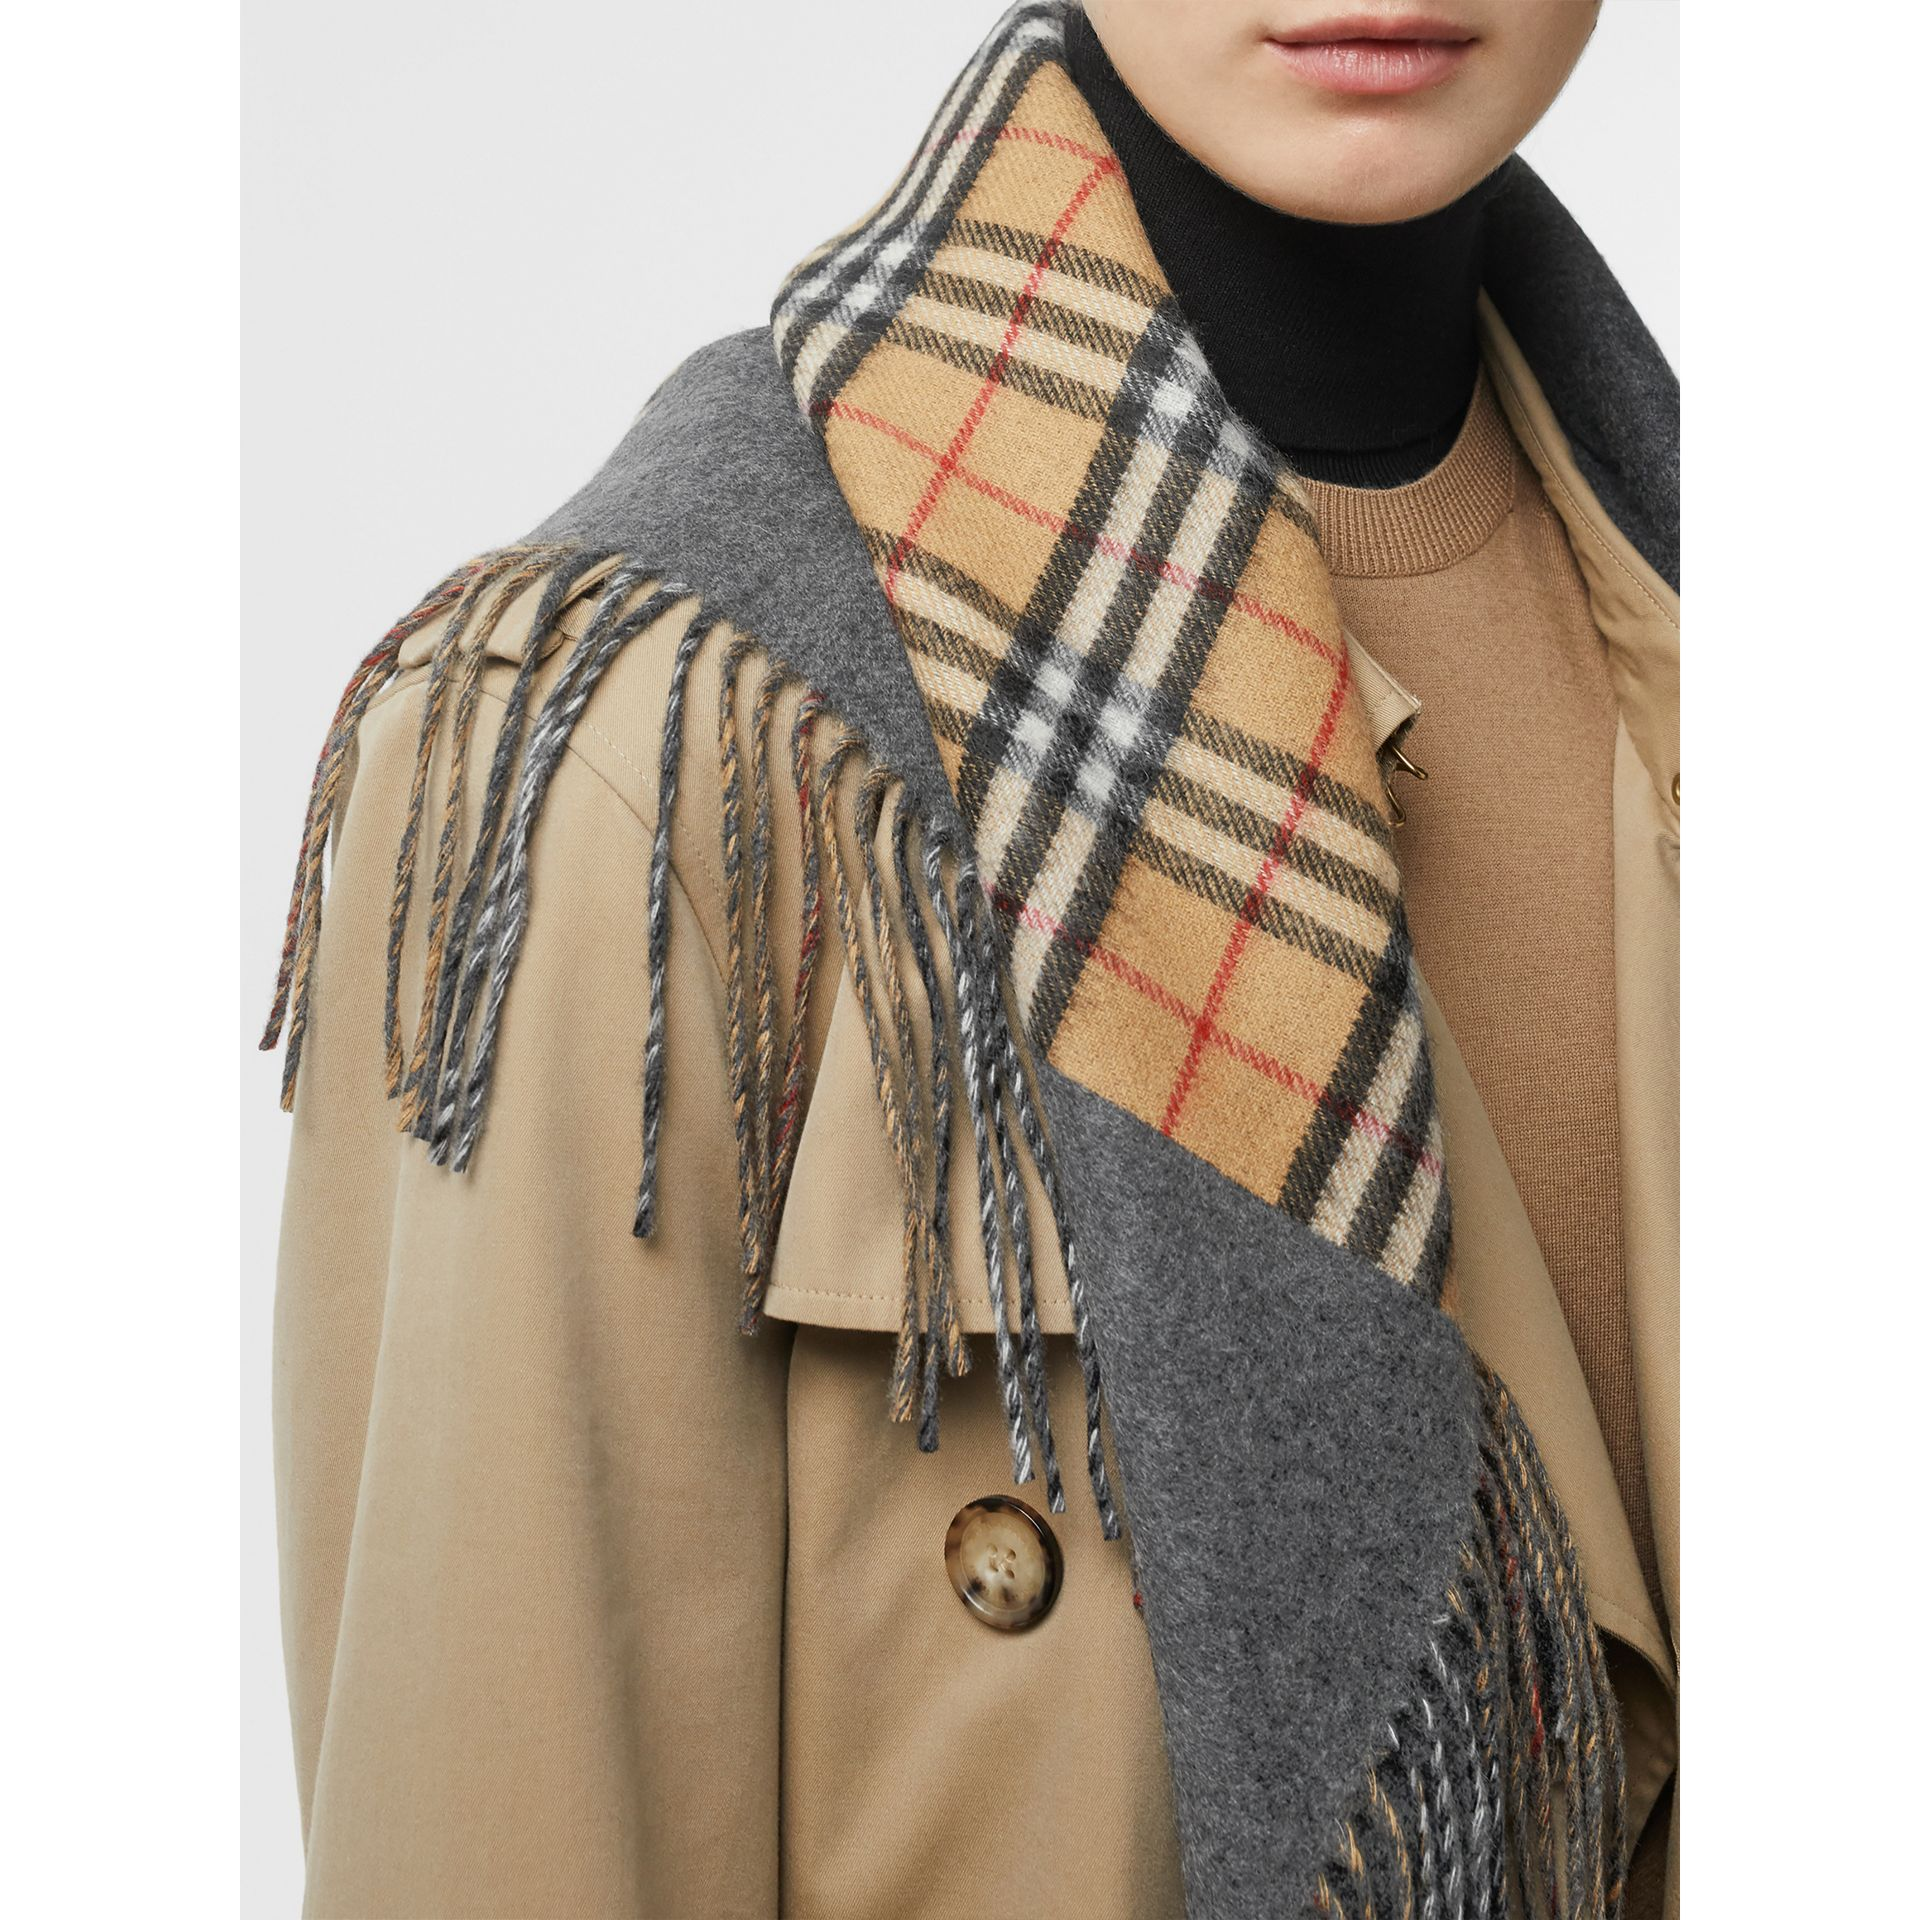 The Burberry Bandana in Vintage Check Cashmere in Pewter Grey | Burberry - gallery image 2